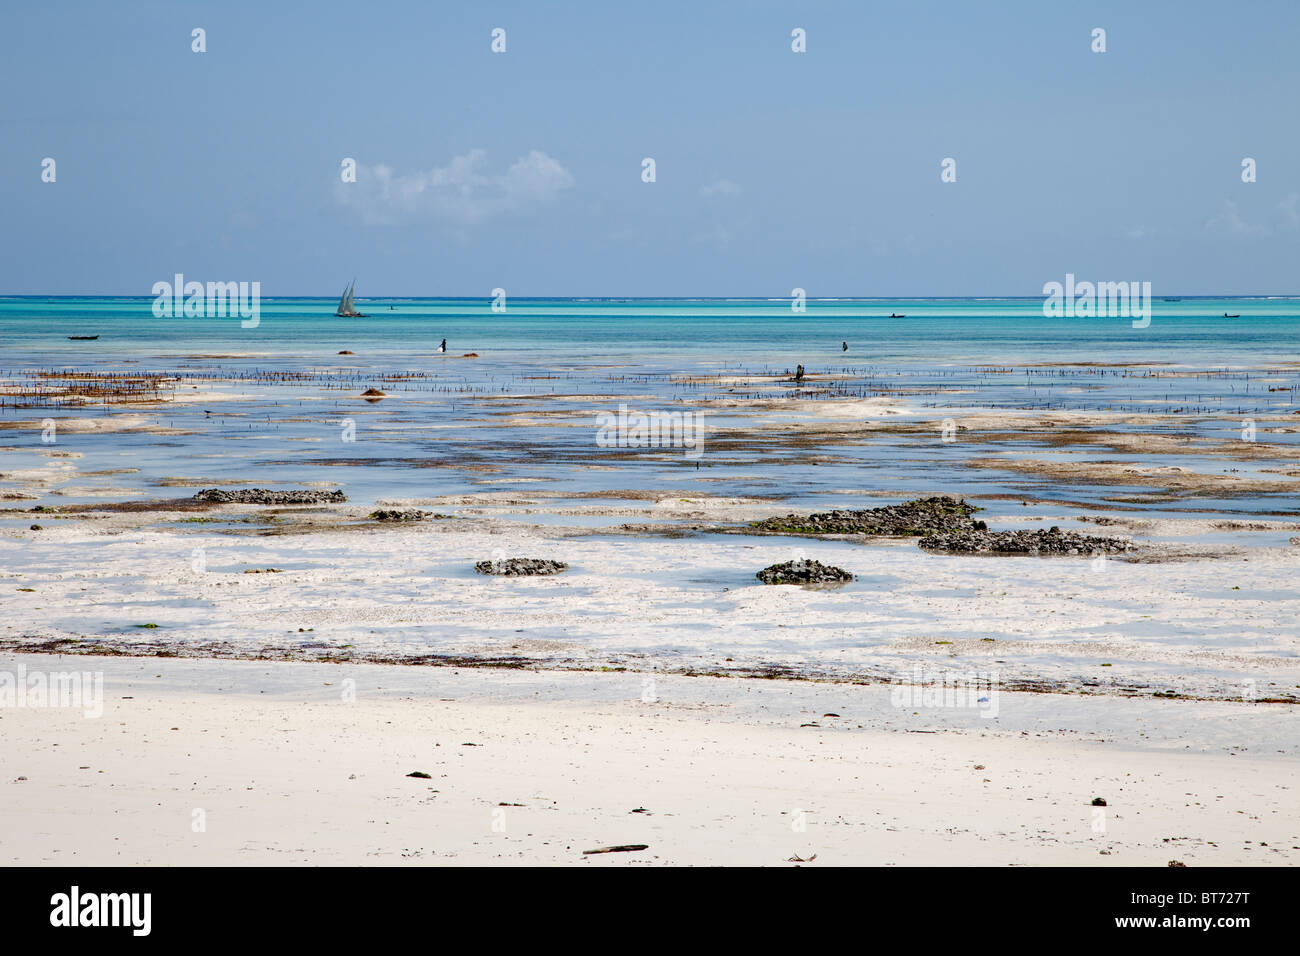 Jambiani, Zanzibar, Tanzania. Tide Flats at Low Tide.  Women cultivate seaweed on these tide flats for export. - Stock Image